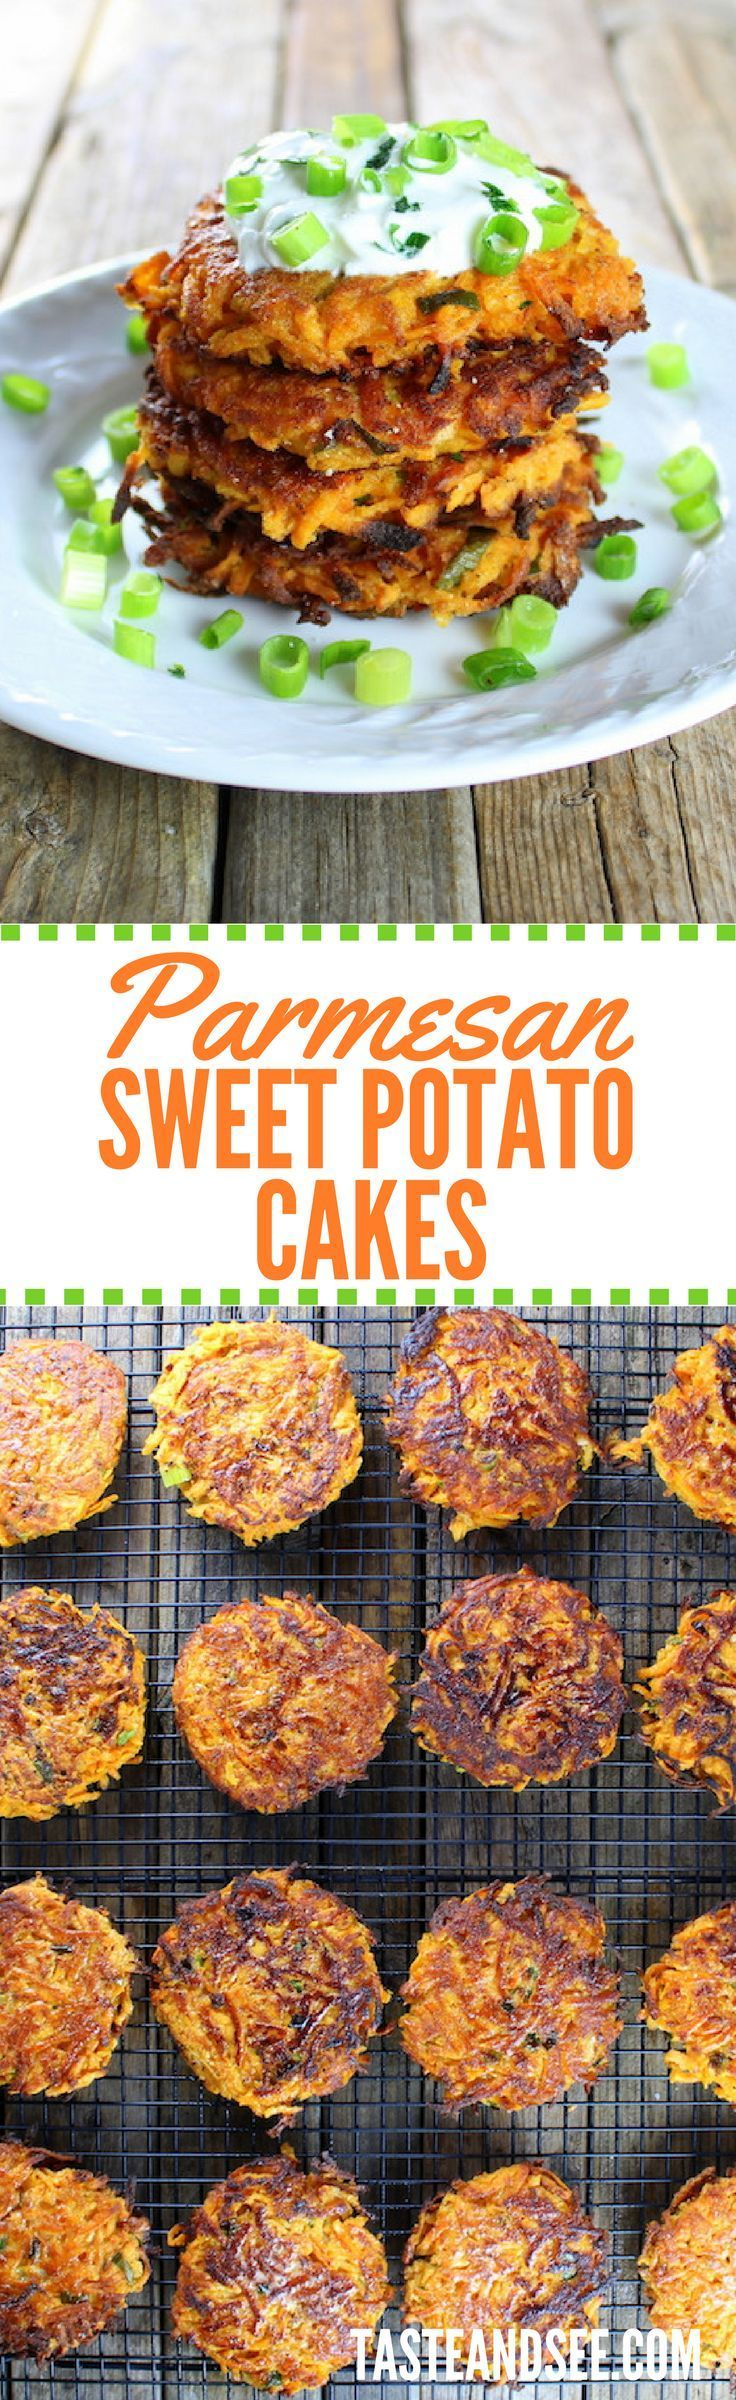 Parmesan Sweet Potato Cakes: Savory & cheesy, a bit smoky, w/a touch of sweet. tasteandsee.com